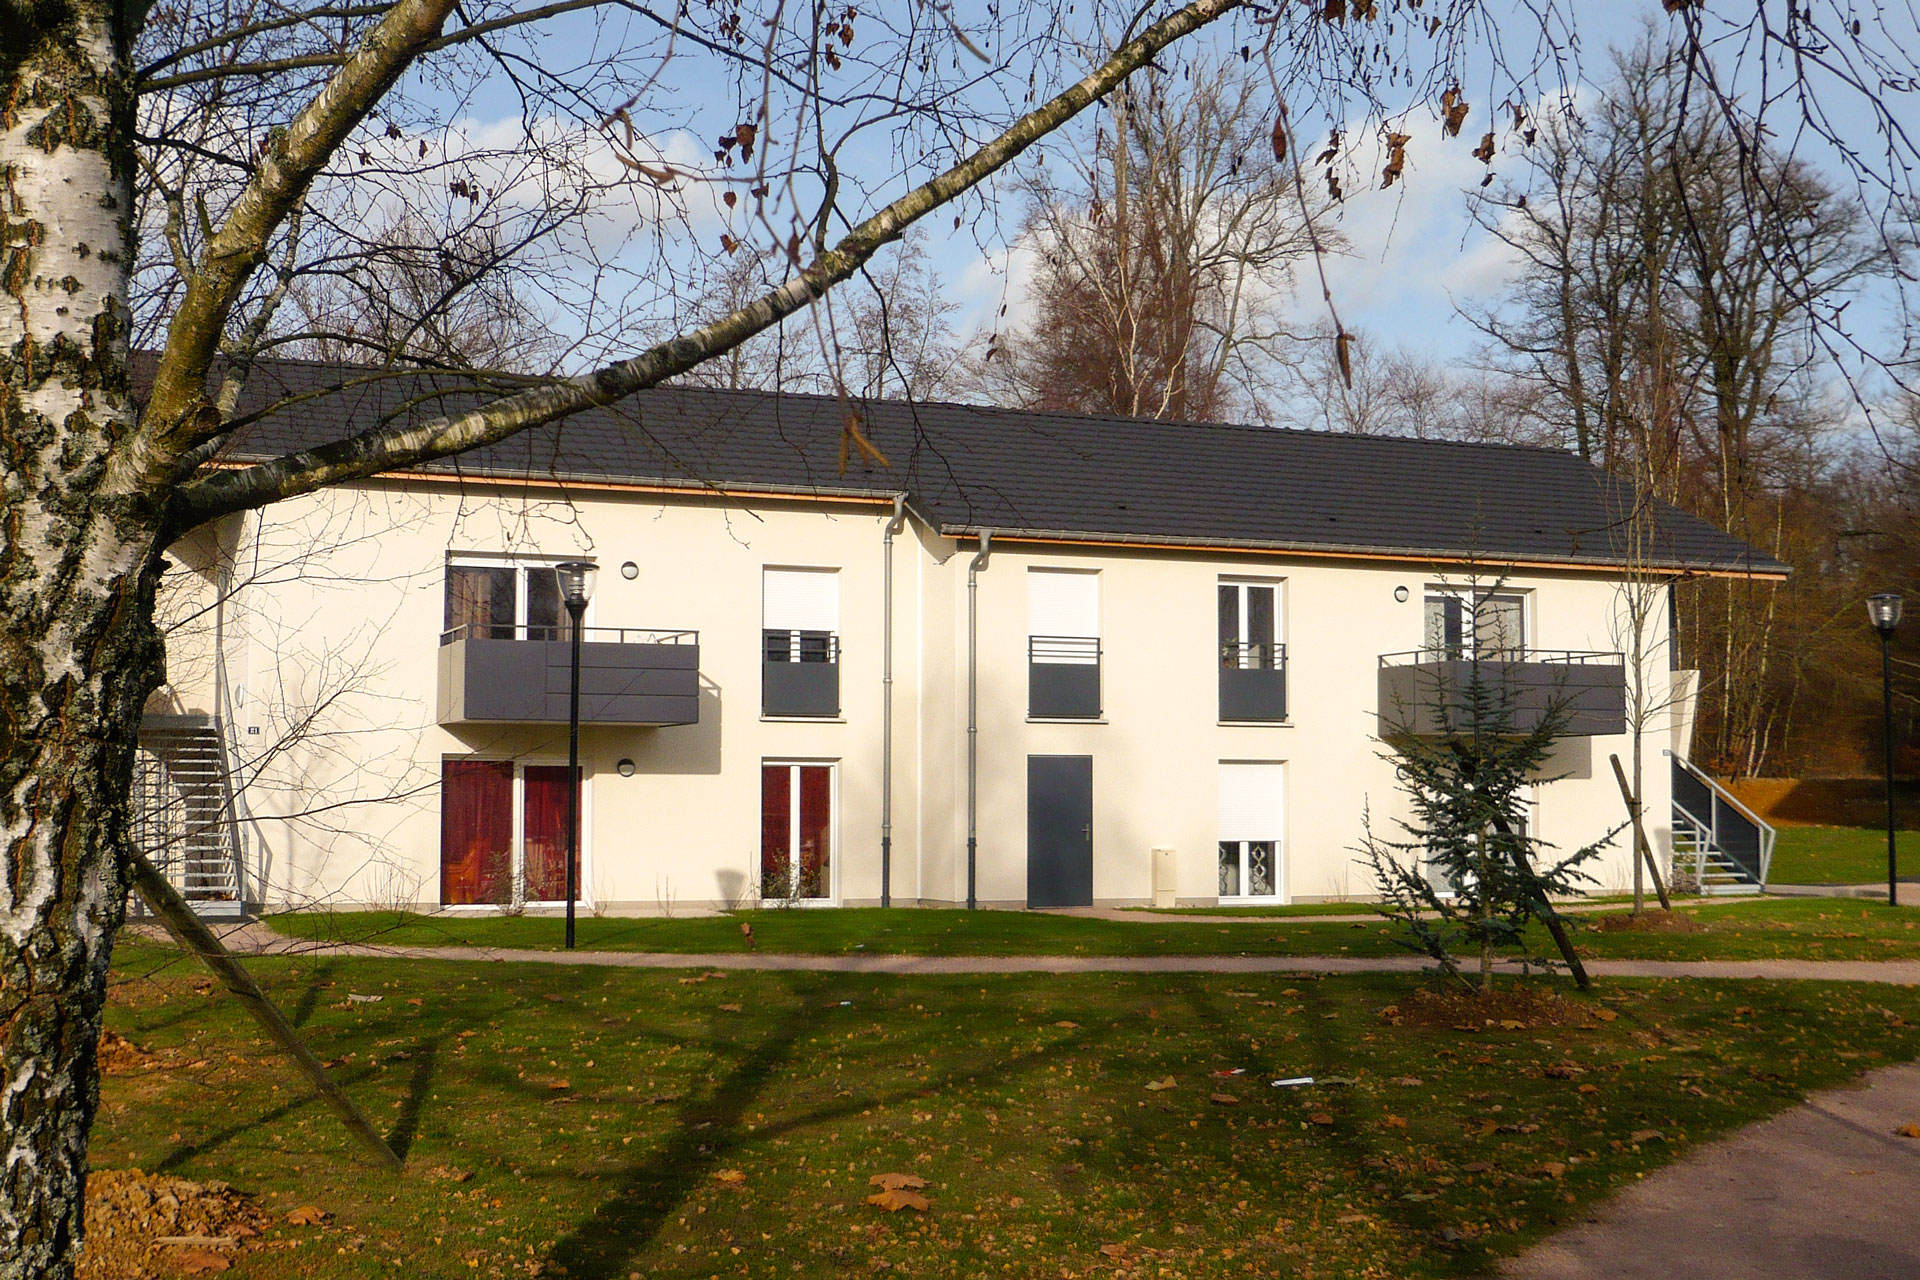 construction de 10 logements ophlm epinal